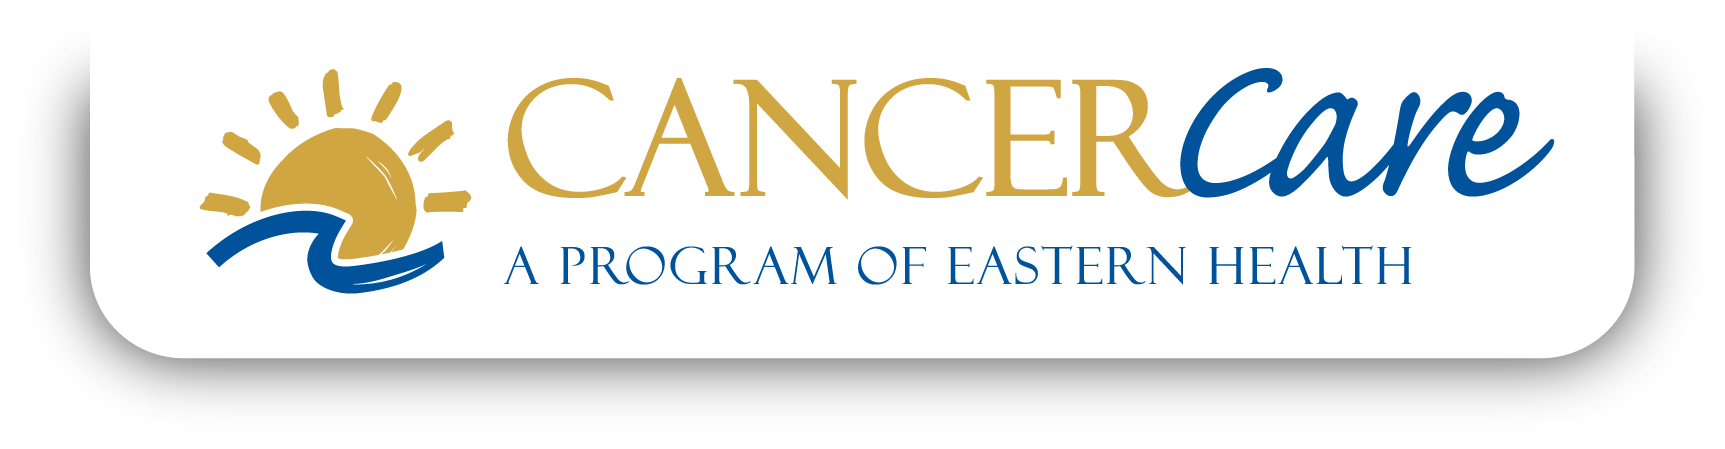 Cancer Care - A program of Eastern Health